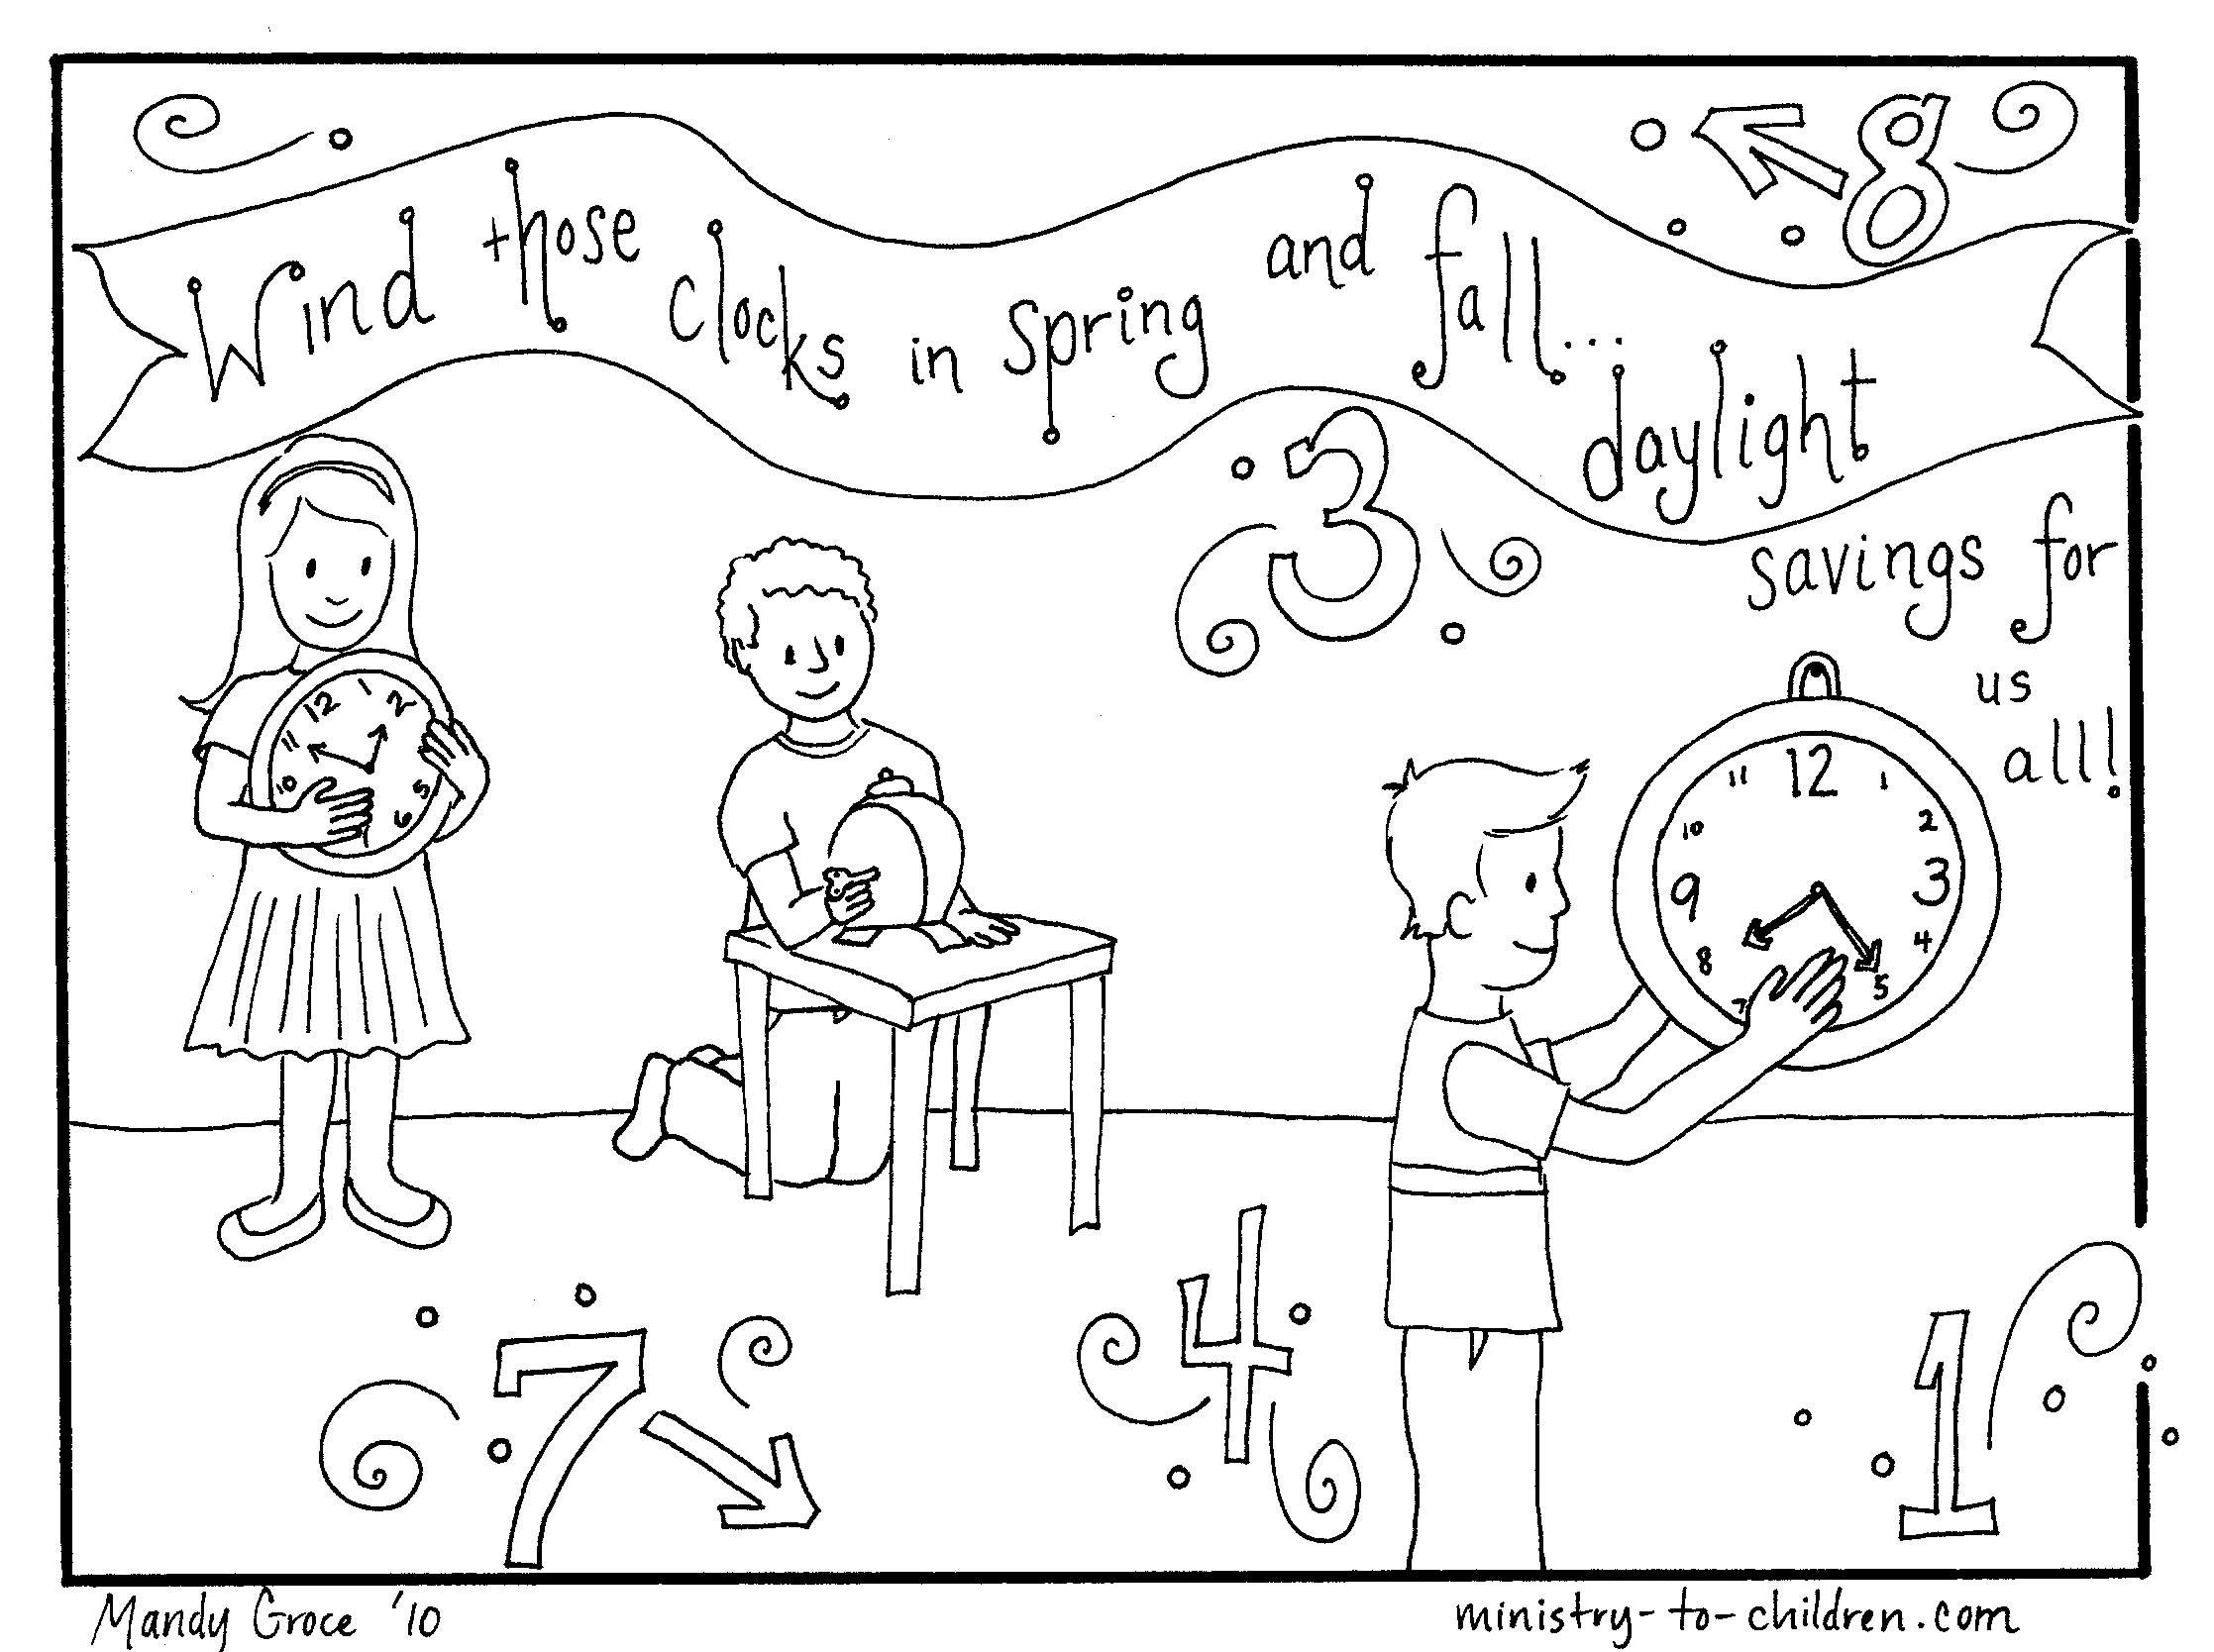 Coloring Page About Daylight Savings Time Ministry